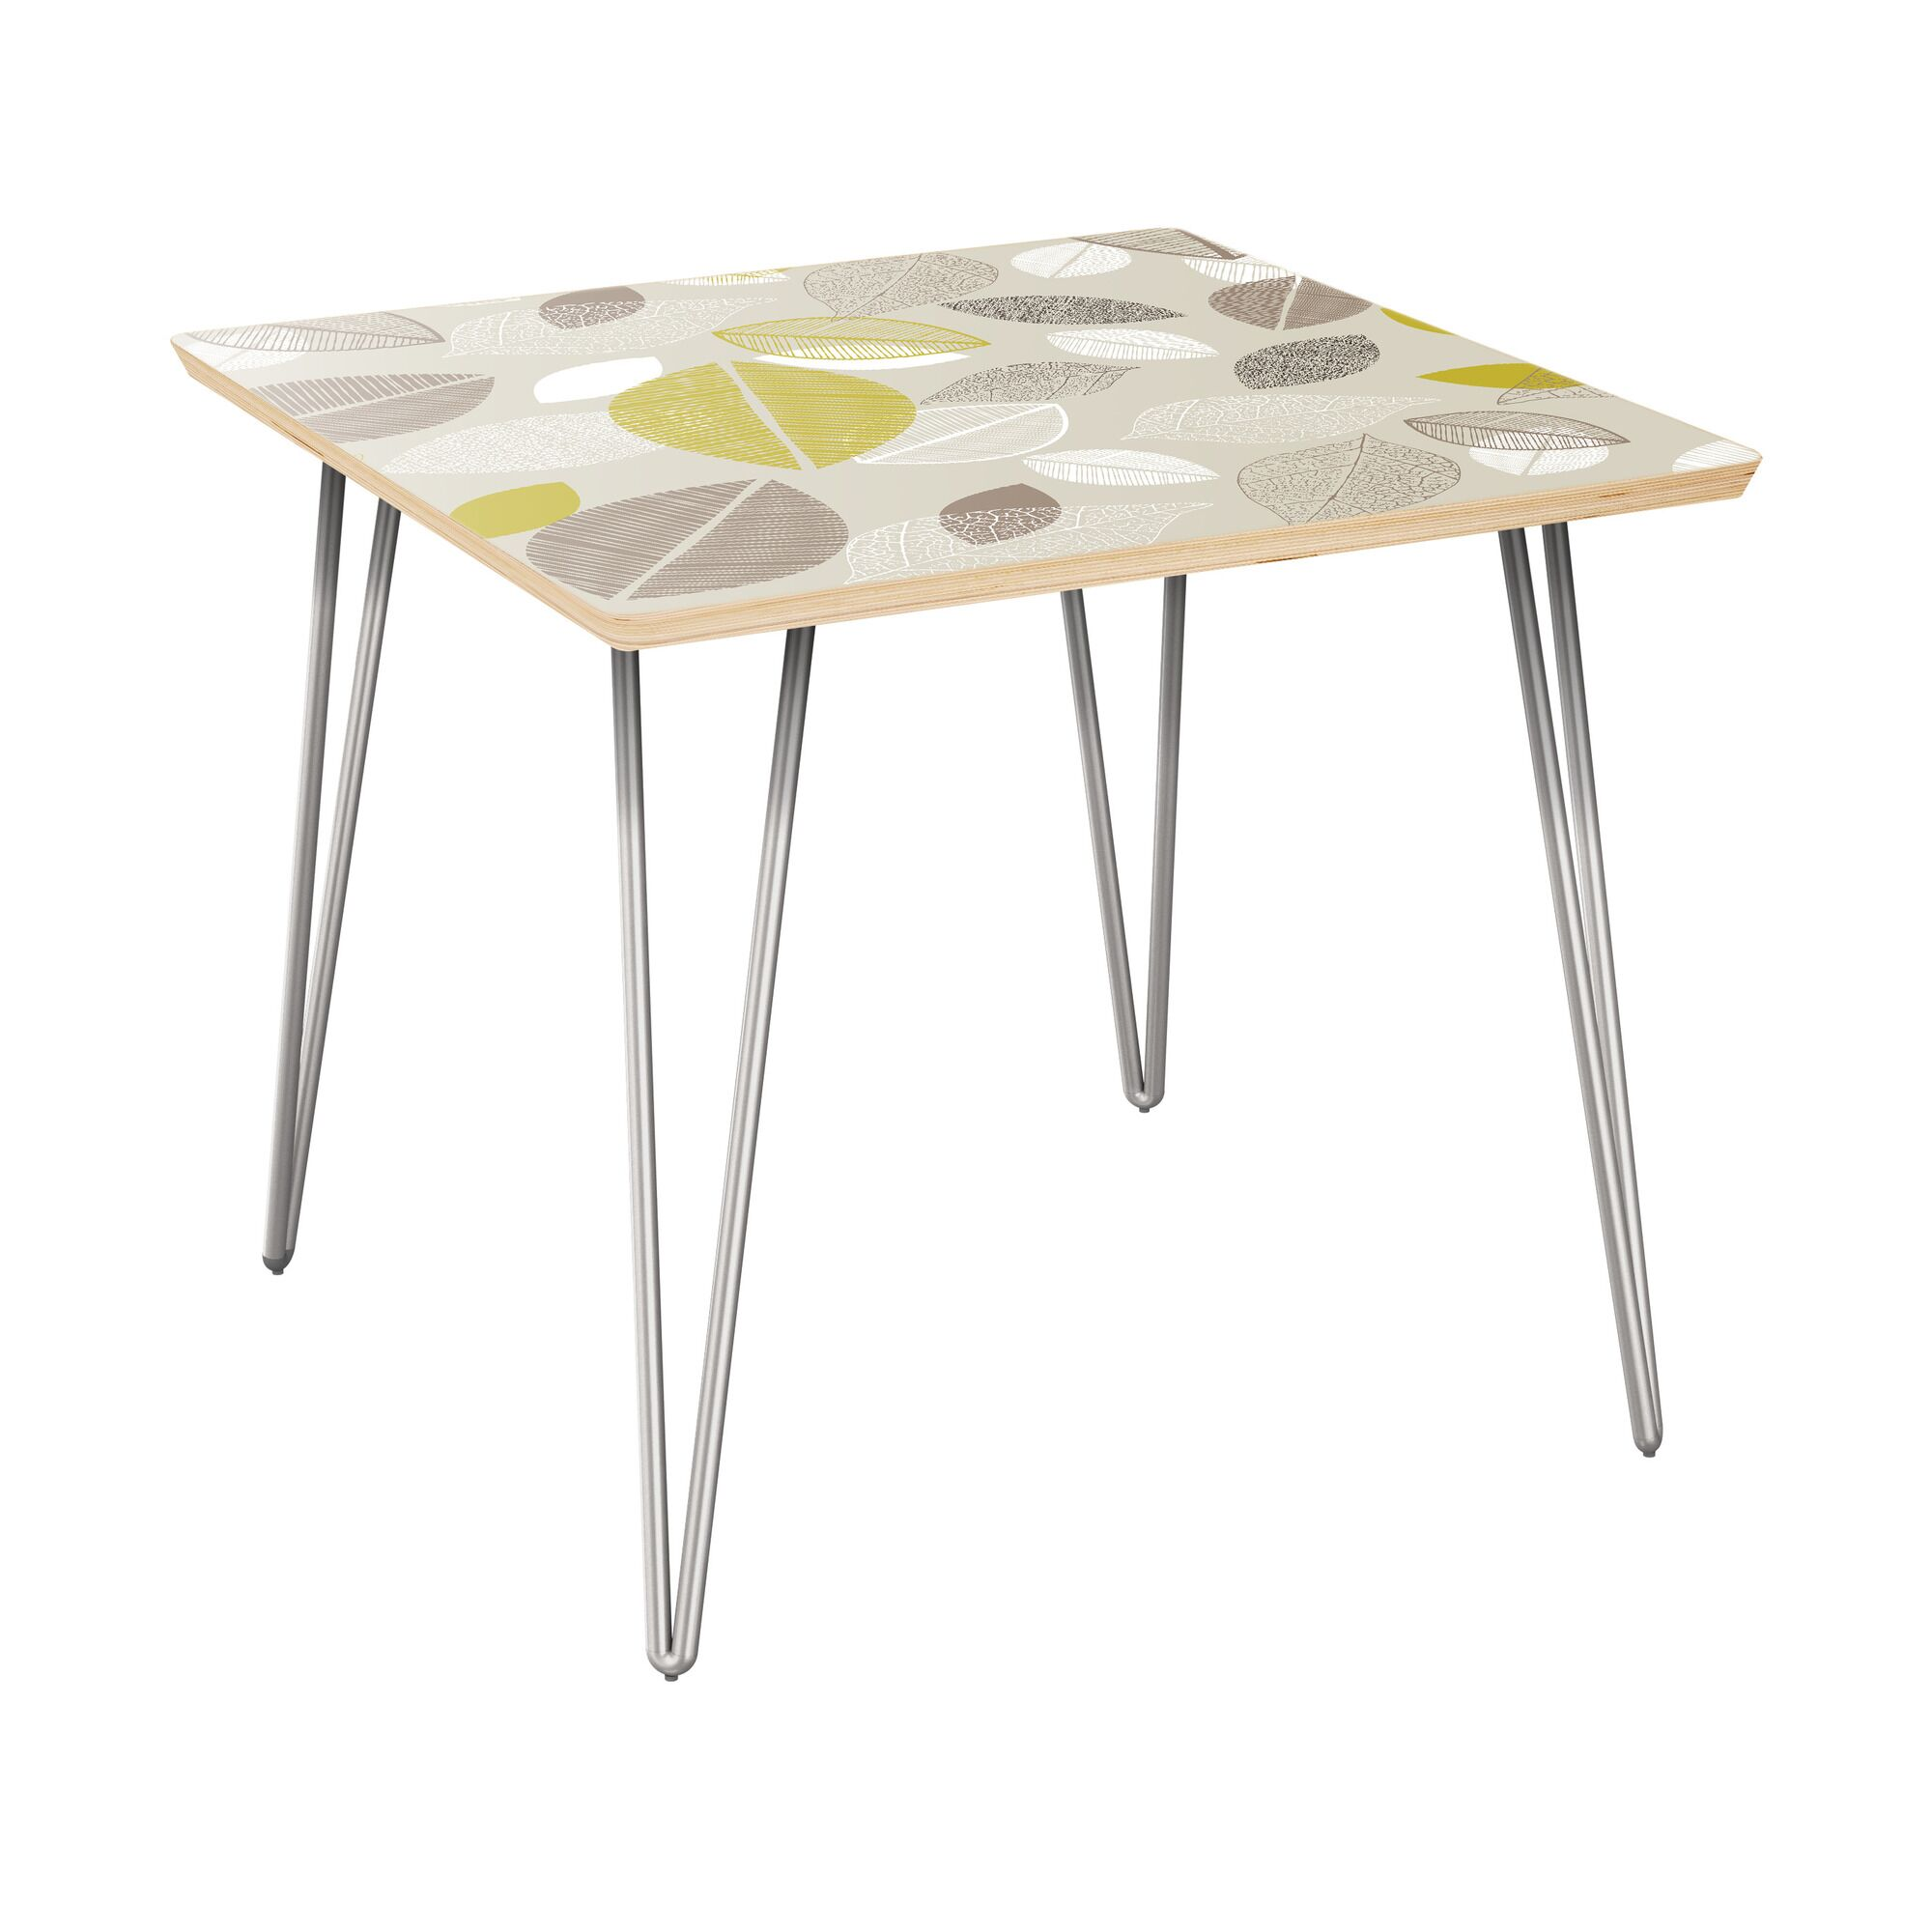 Schaper End Table Table Top Boarder Color: Natural, Table Base Color: Chrome, Table Top Color: Blue